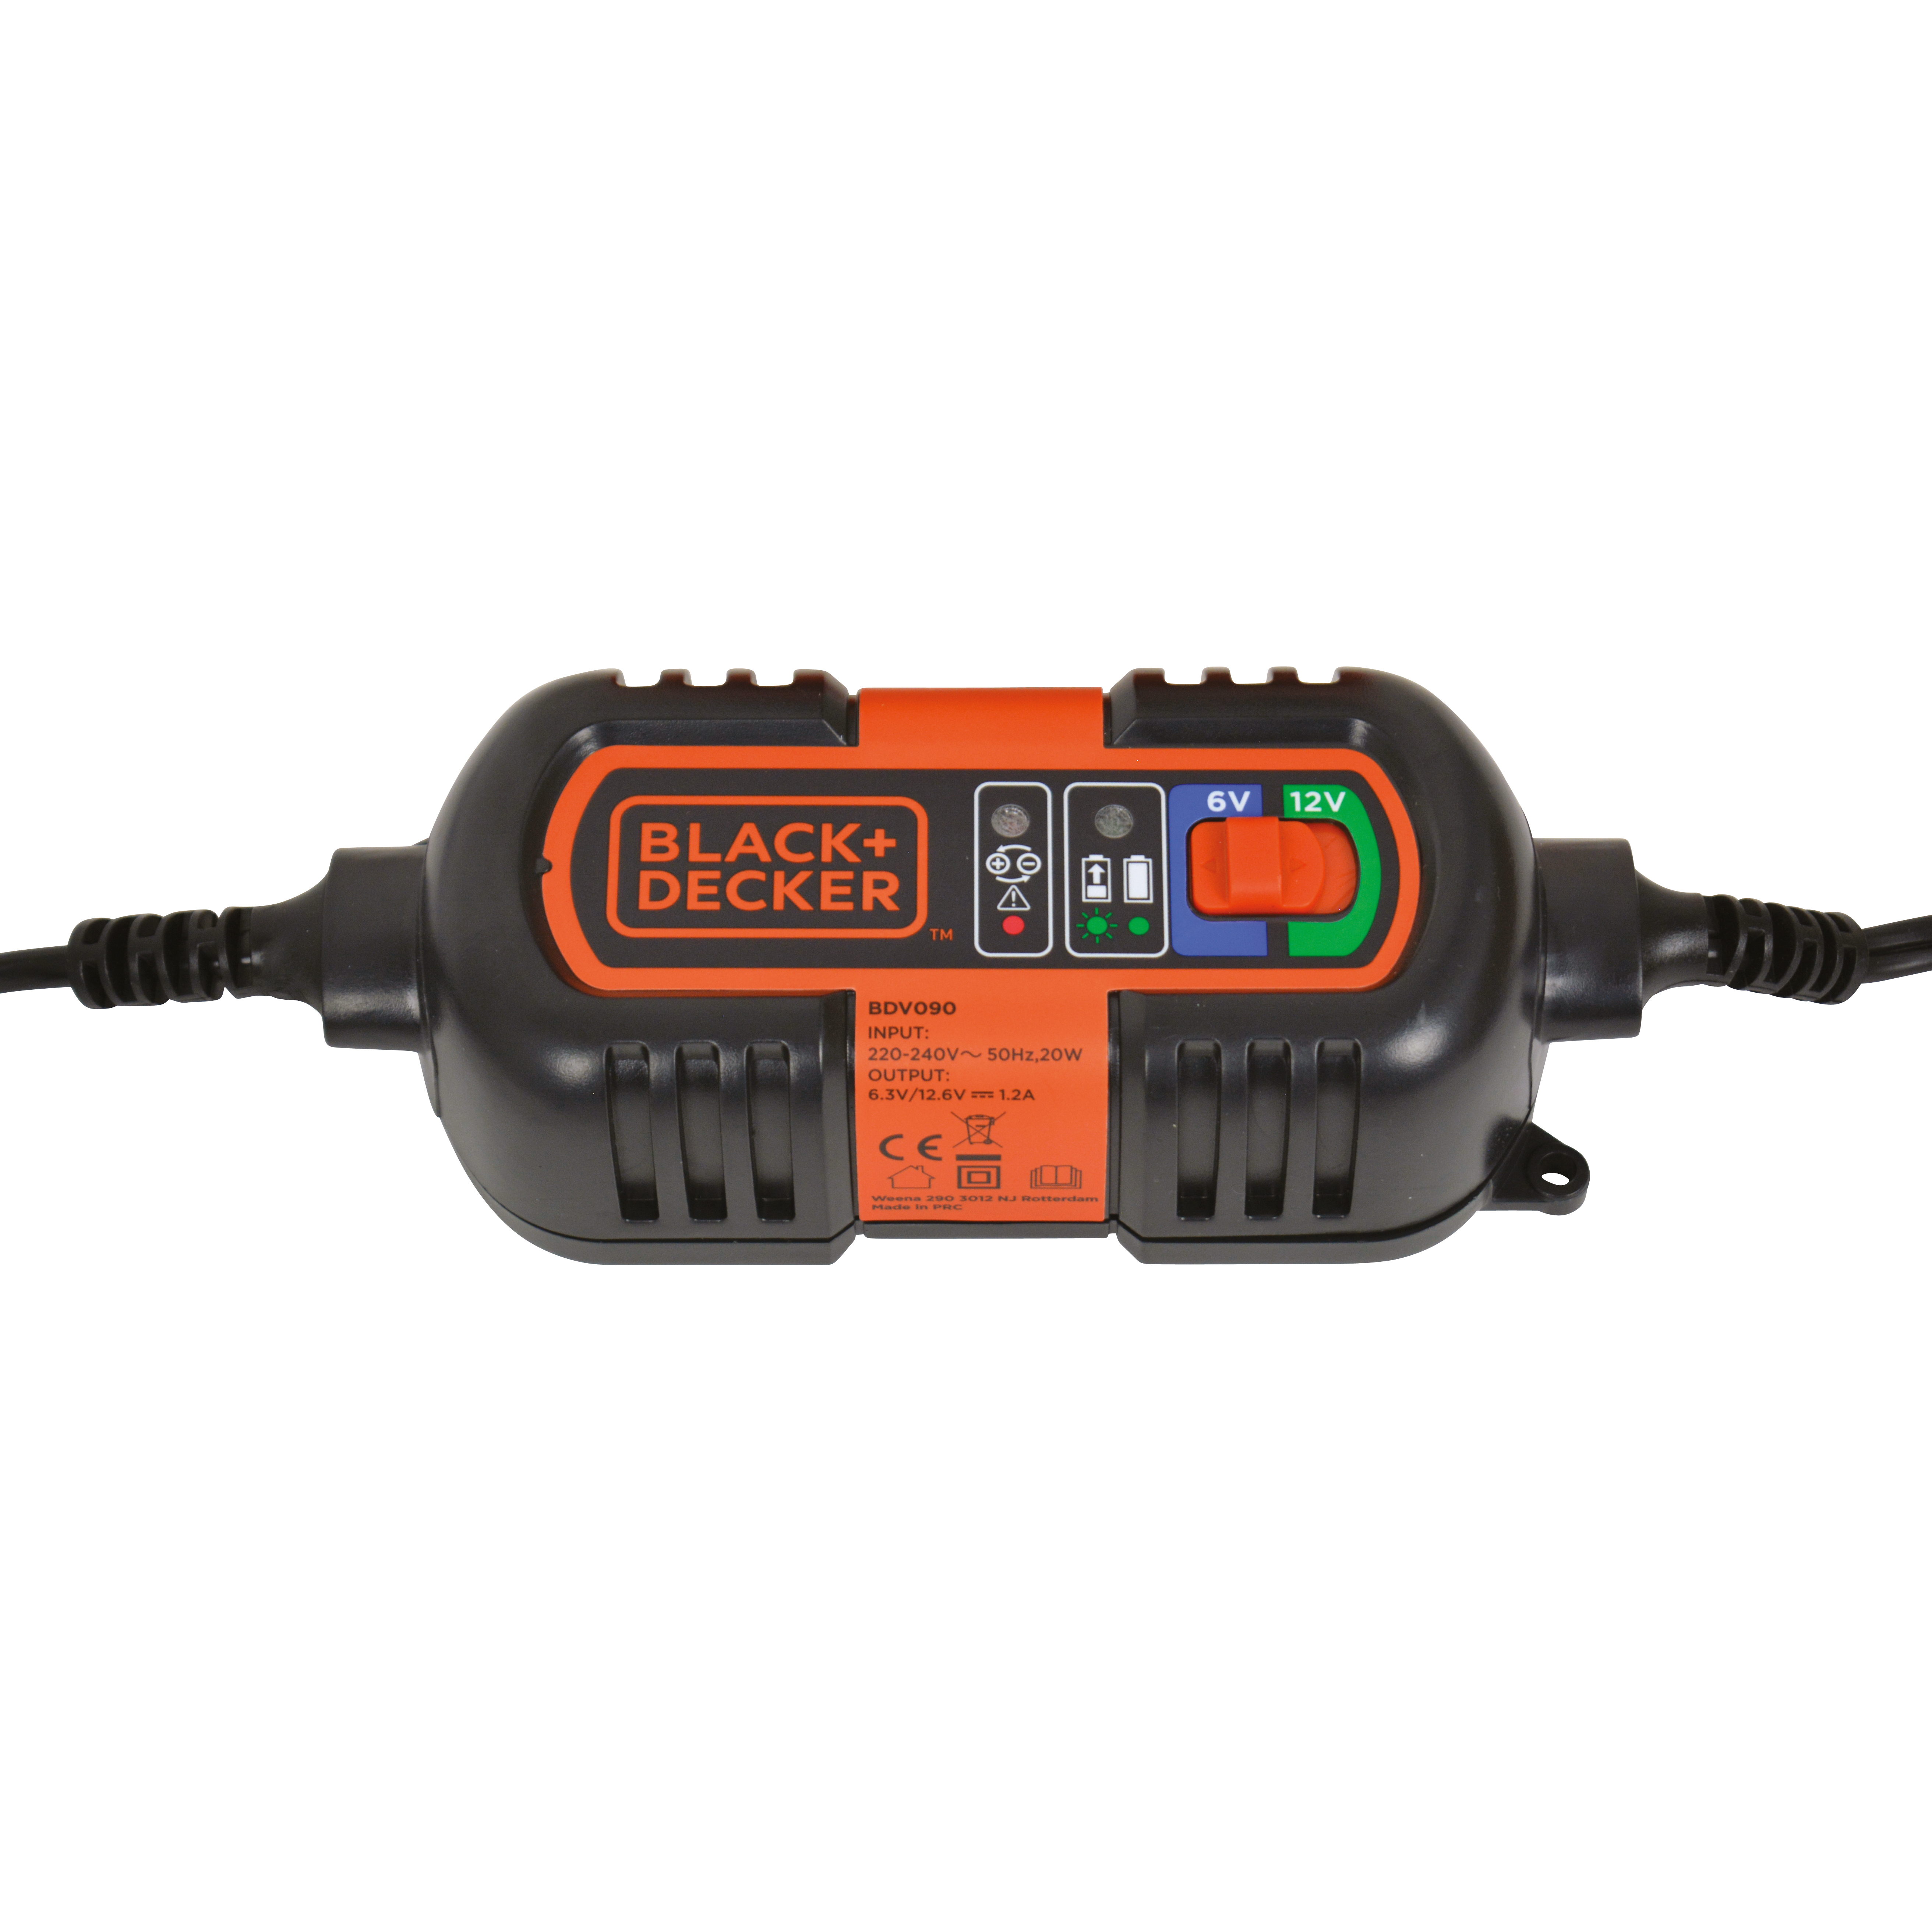 Black&Decker BDV090 Acculader 6V & 12V